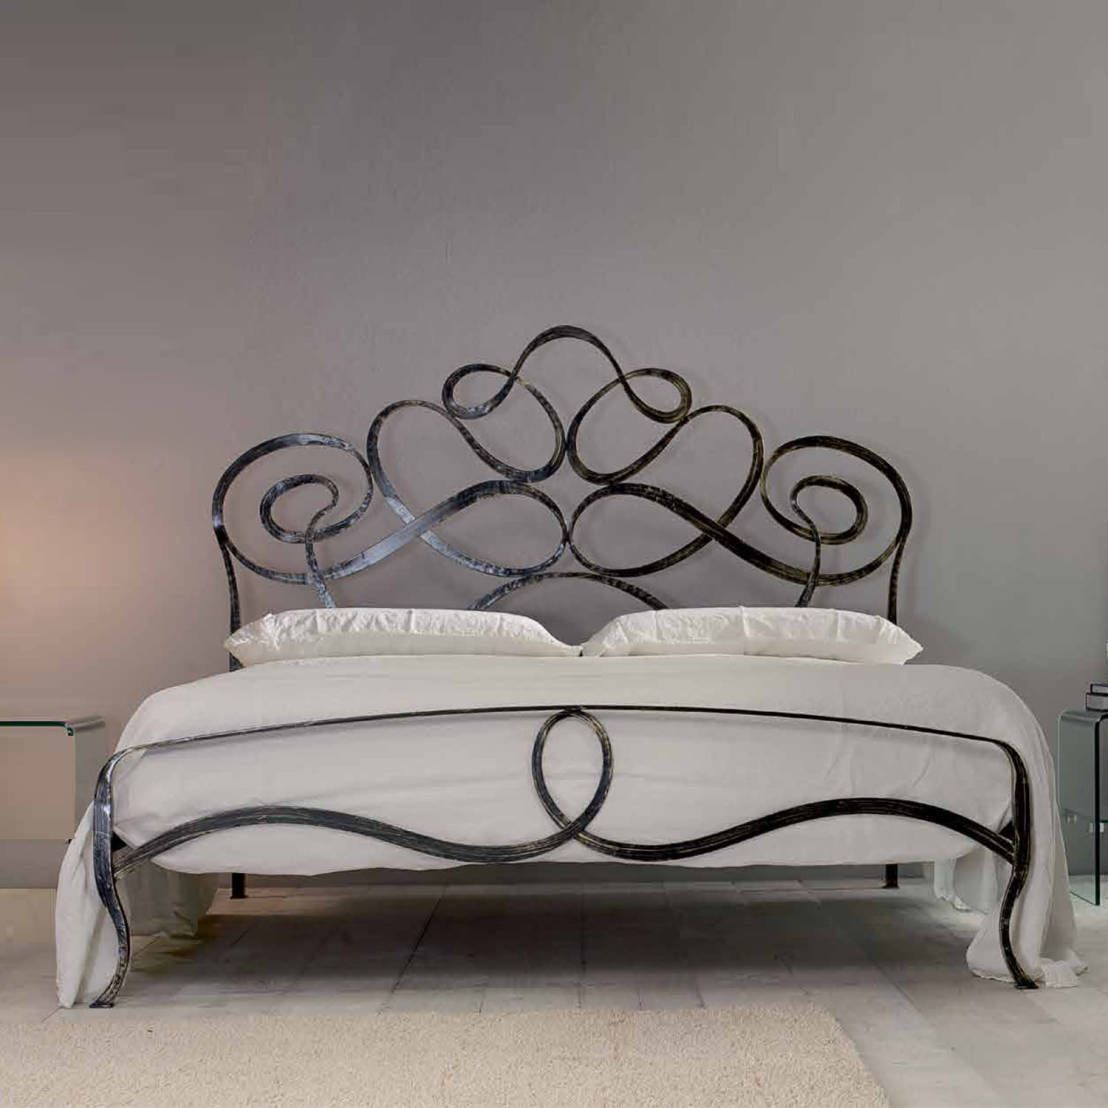 7 Amazing Iron Decoration Ideas Wrought Iron Bed Frames Iron